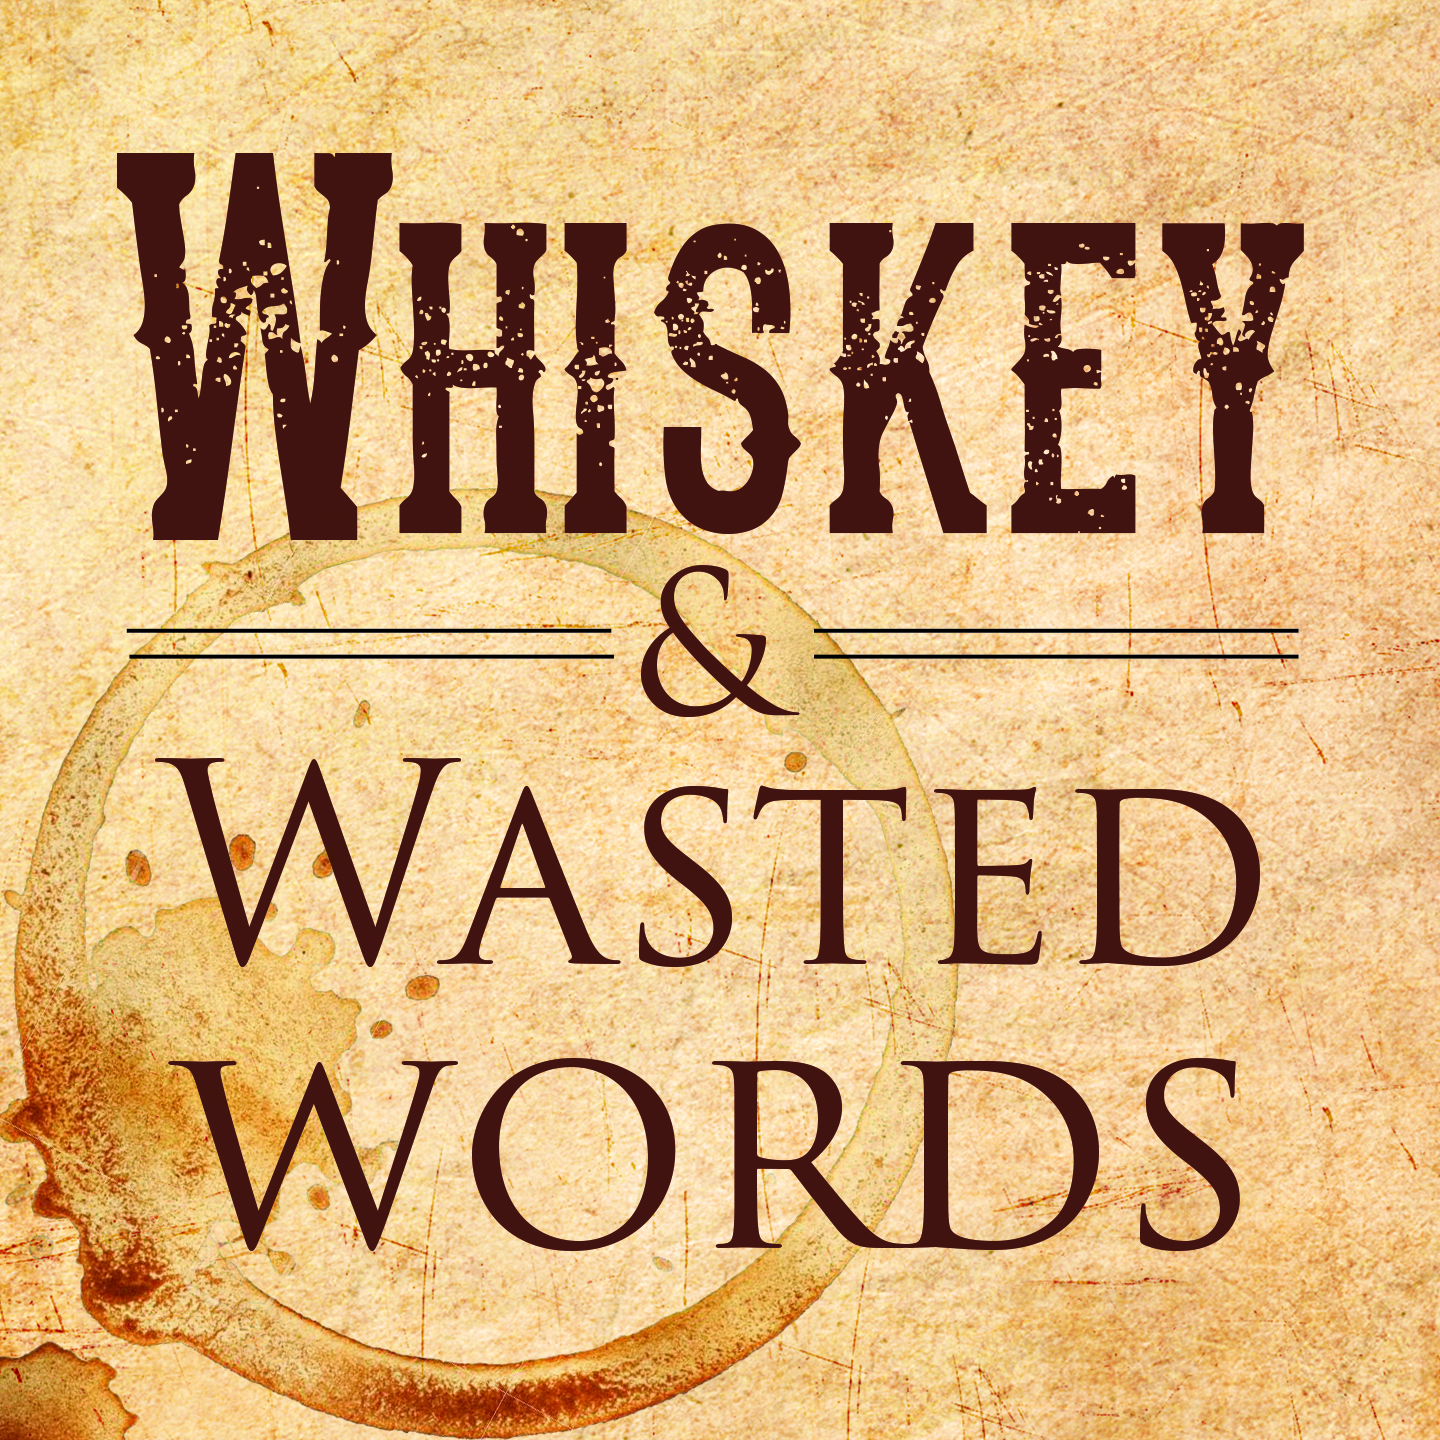 Whiskey & Wasted Words